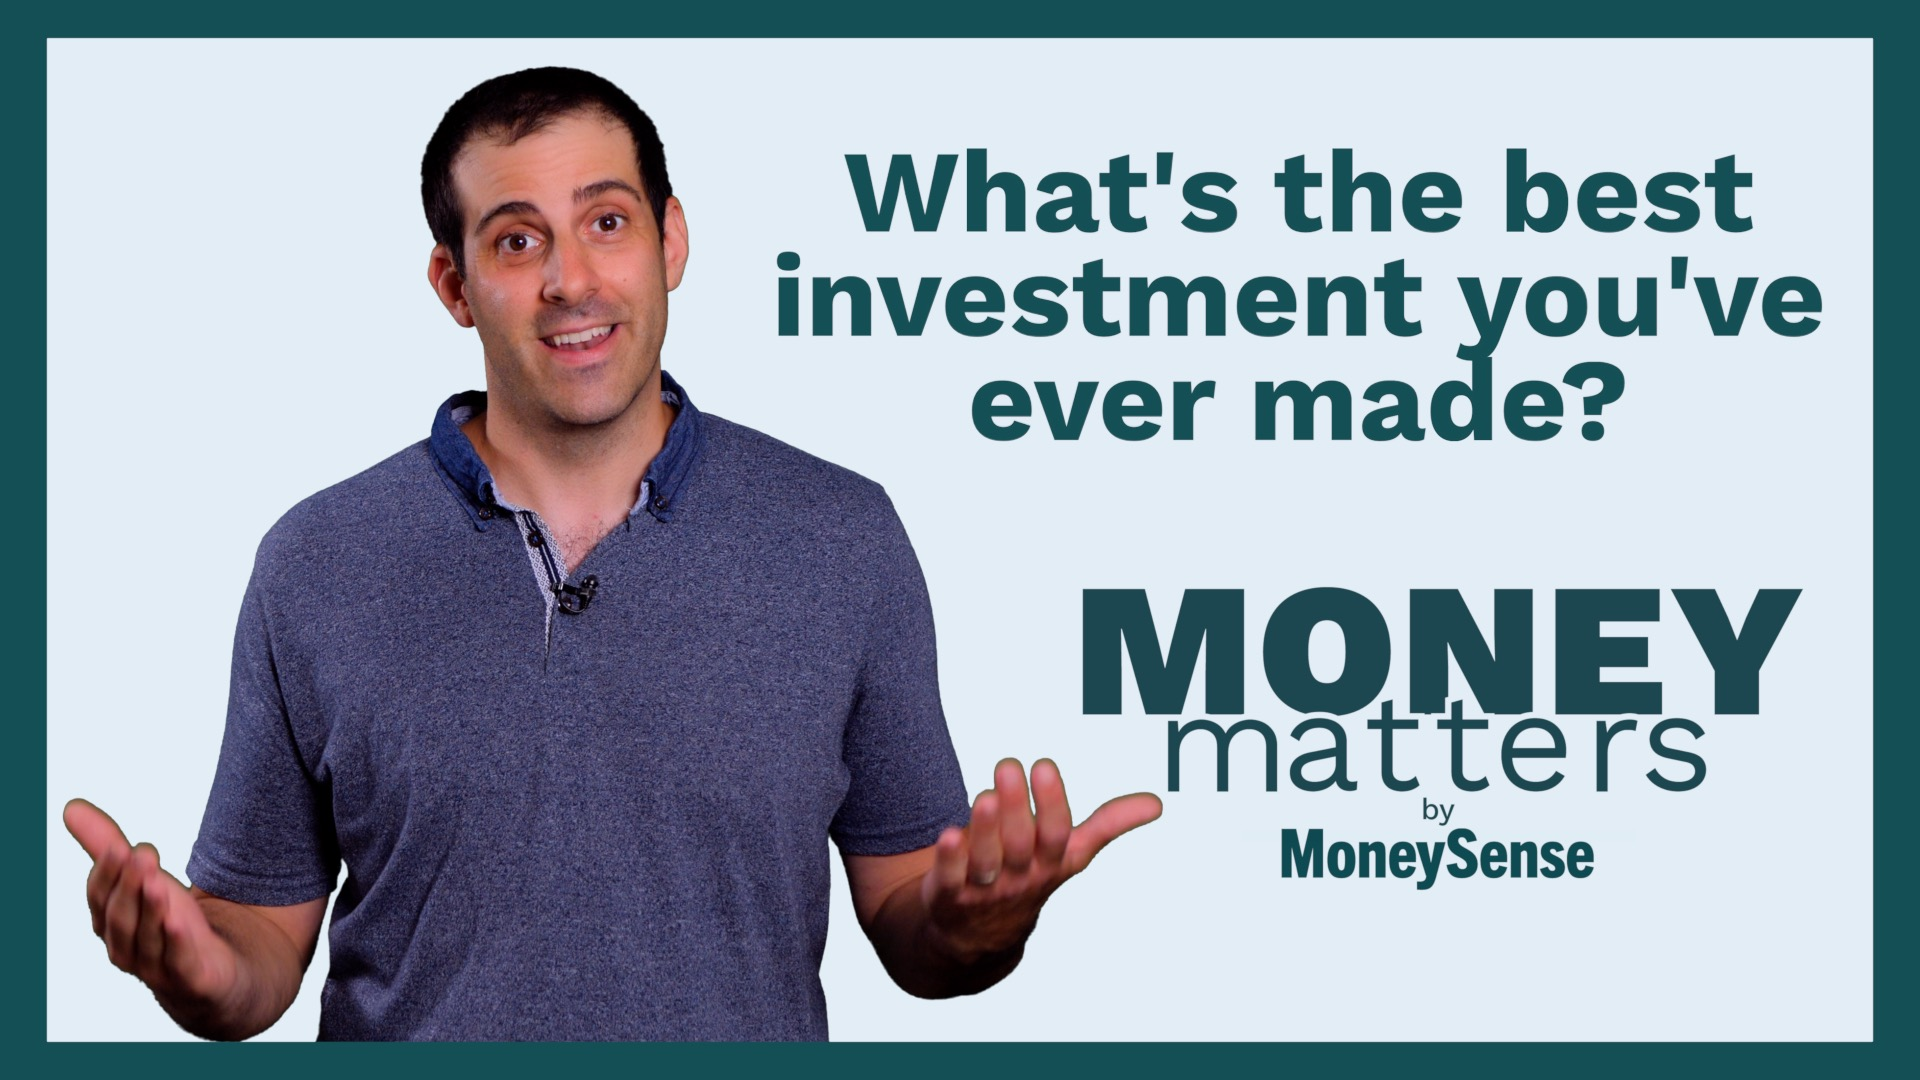 what's the best investment you've ever made